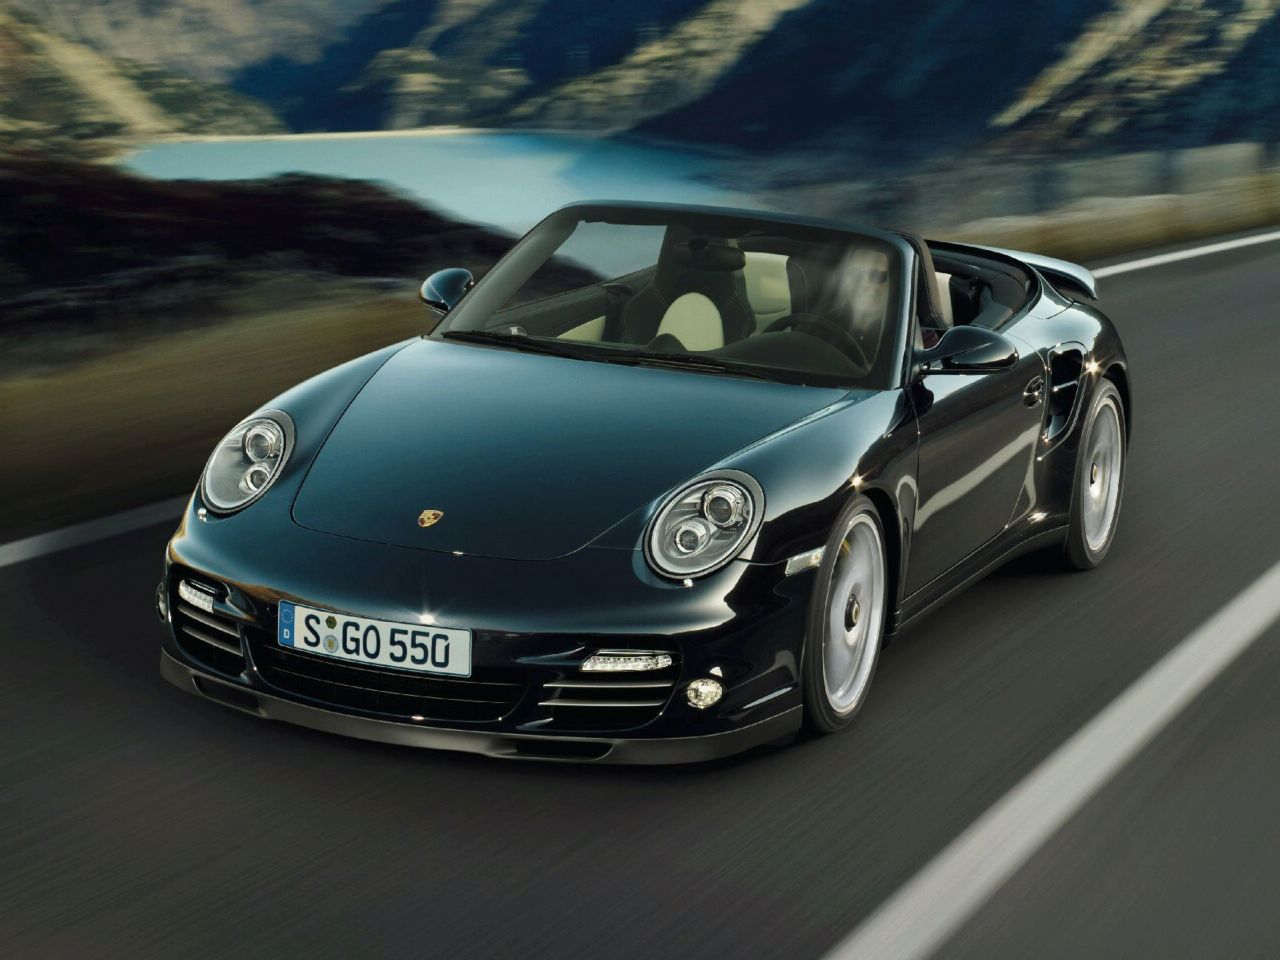 2011 porsche 911 turbo s w 530hp revealed